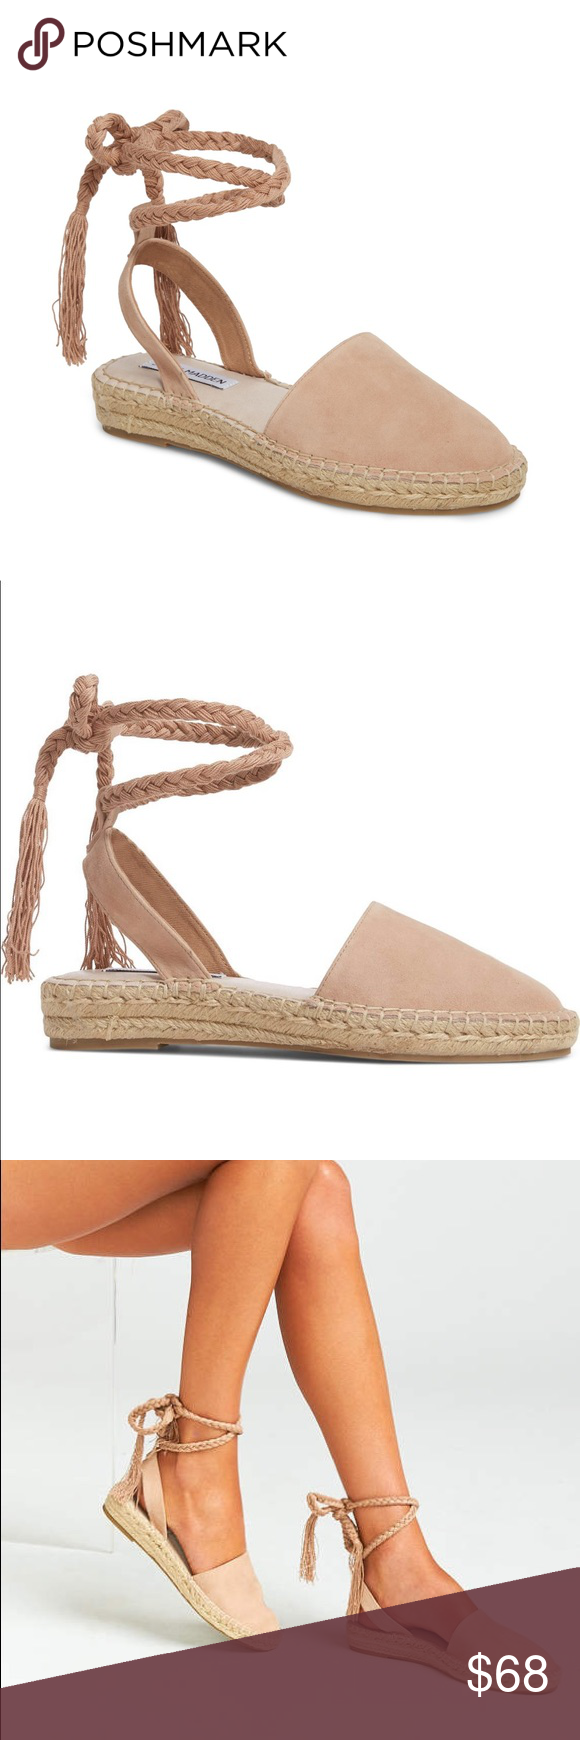 """32122be002b Steve Madden Mesa Wraparound Espadrille Color is """"nude suede"""". Size ..."""